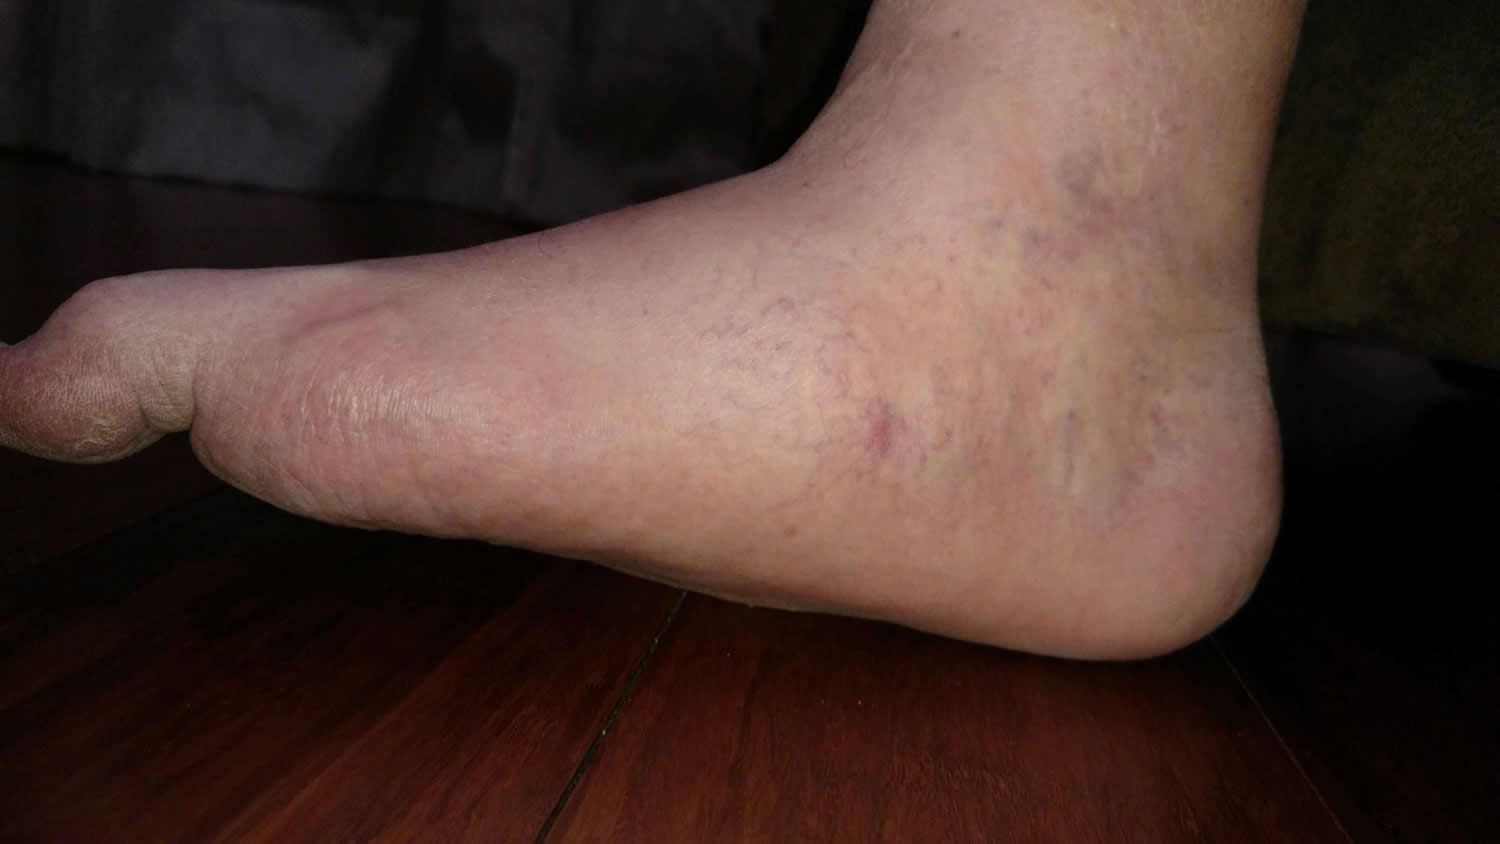 Diabetic Collapse - Charcot Foot